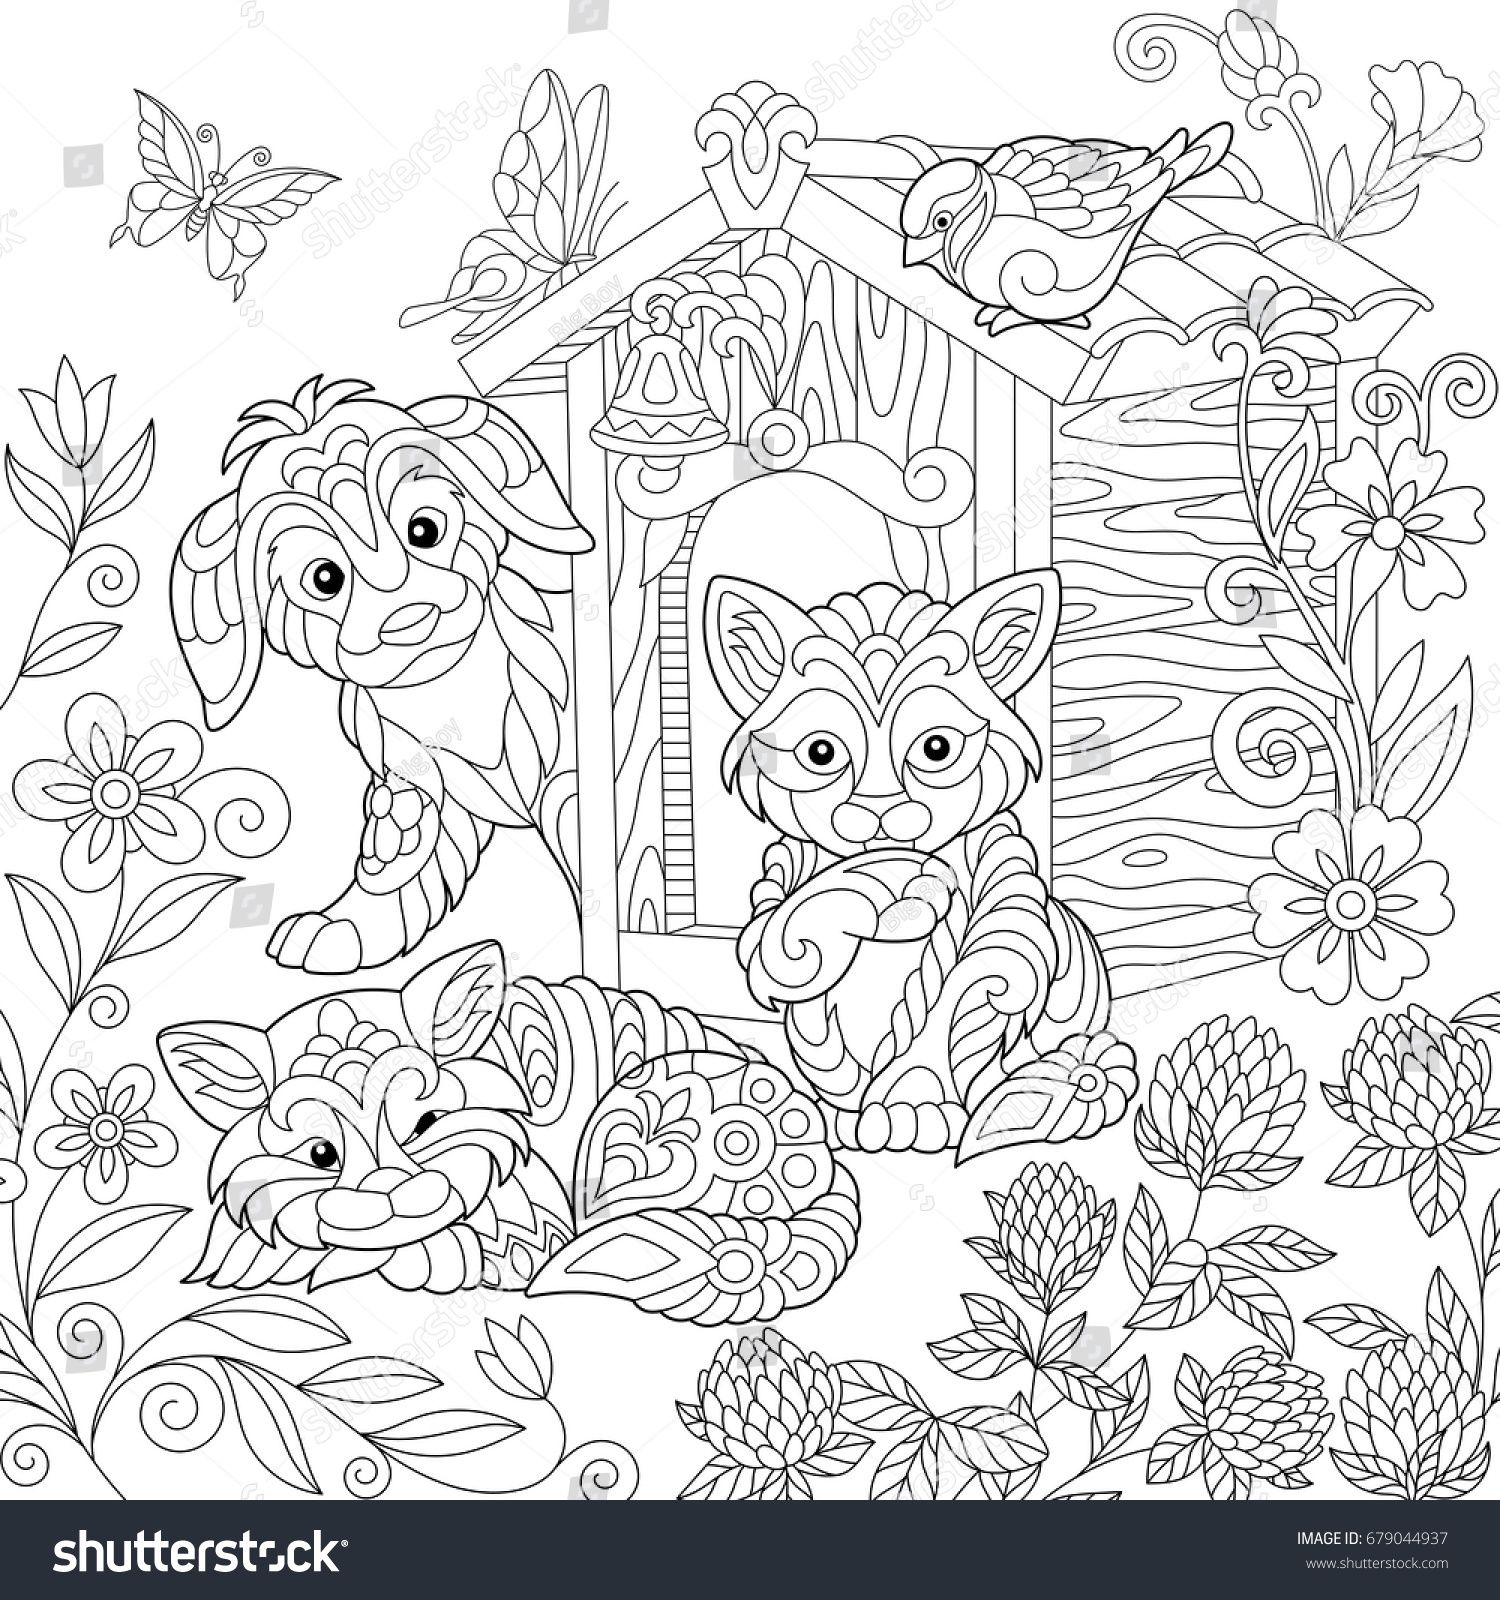 Coloring page of puppy, cat, sparrow bird, dog booth